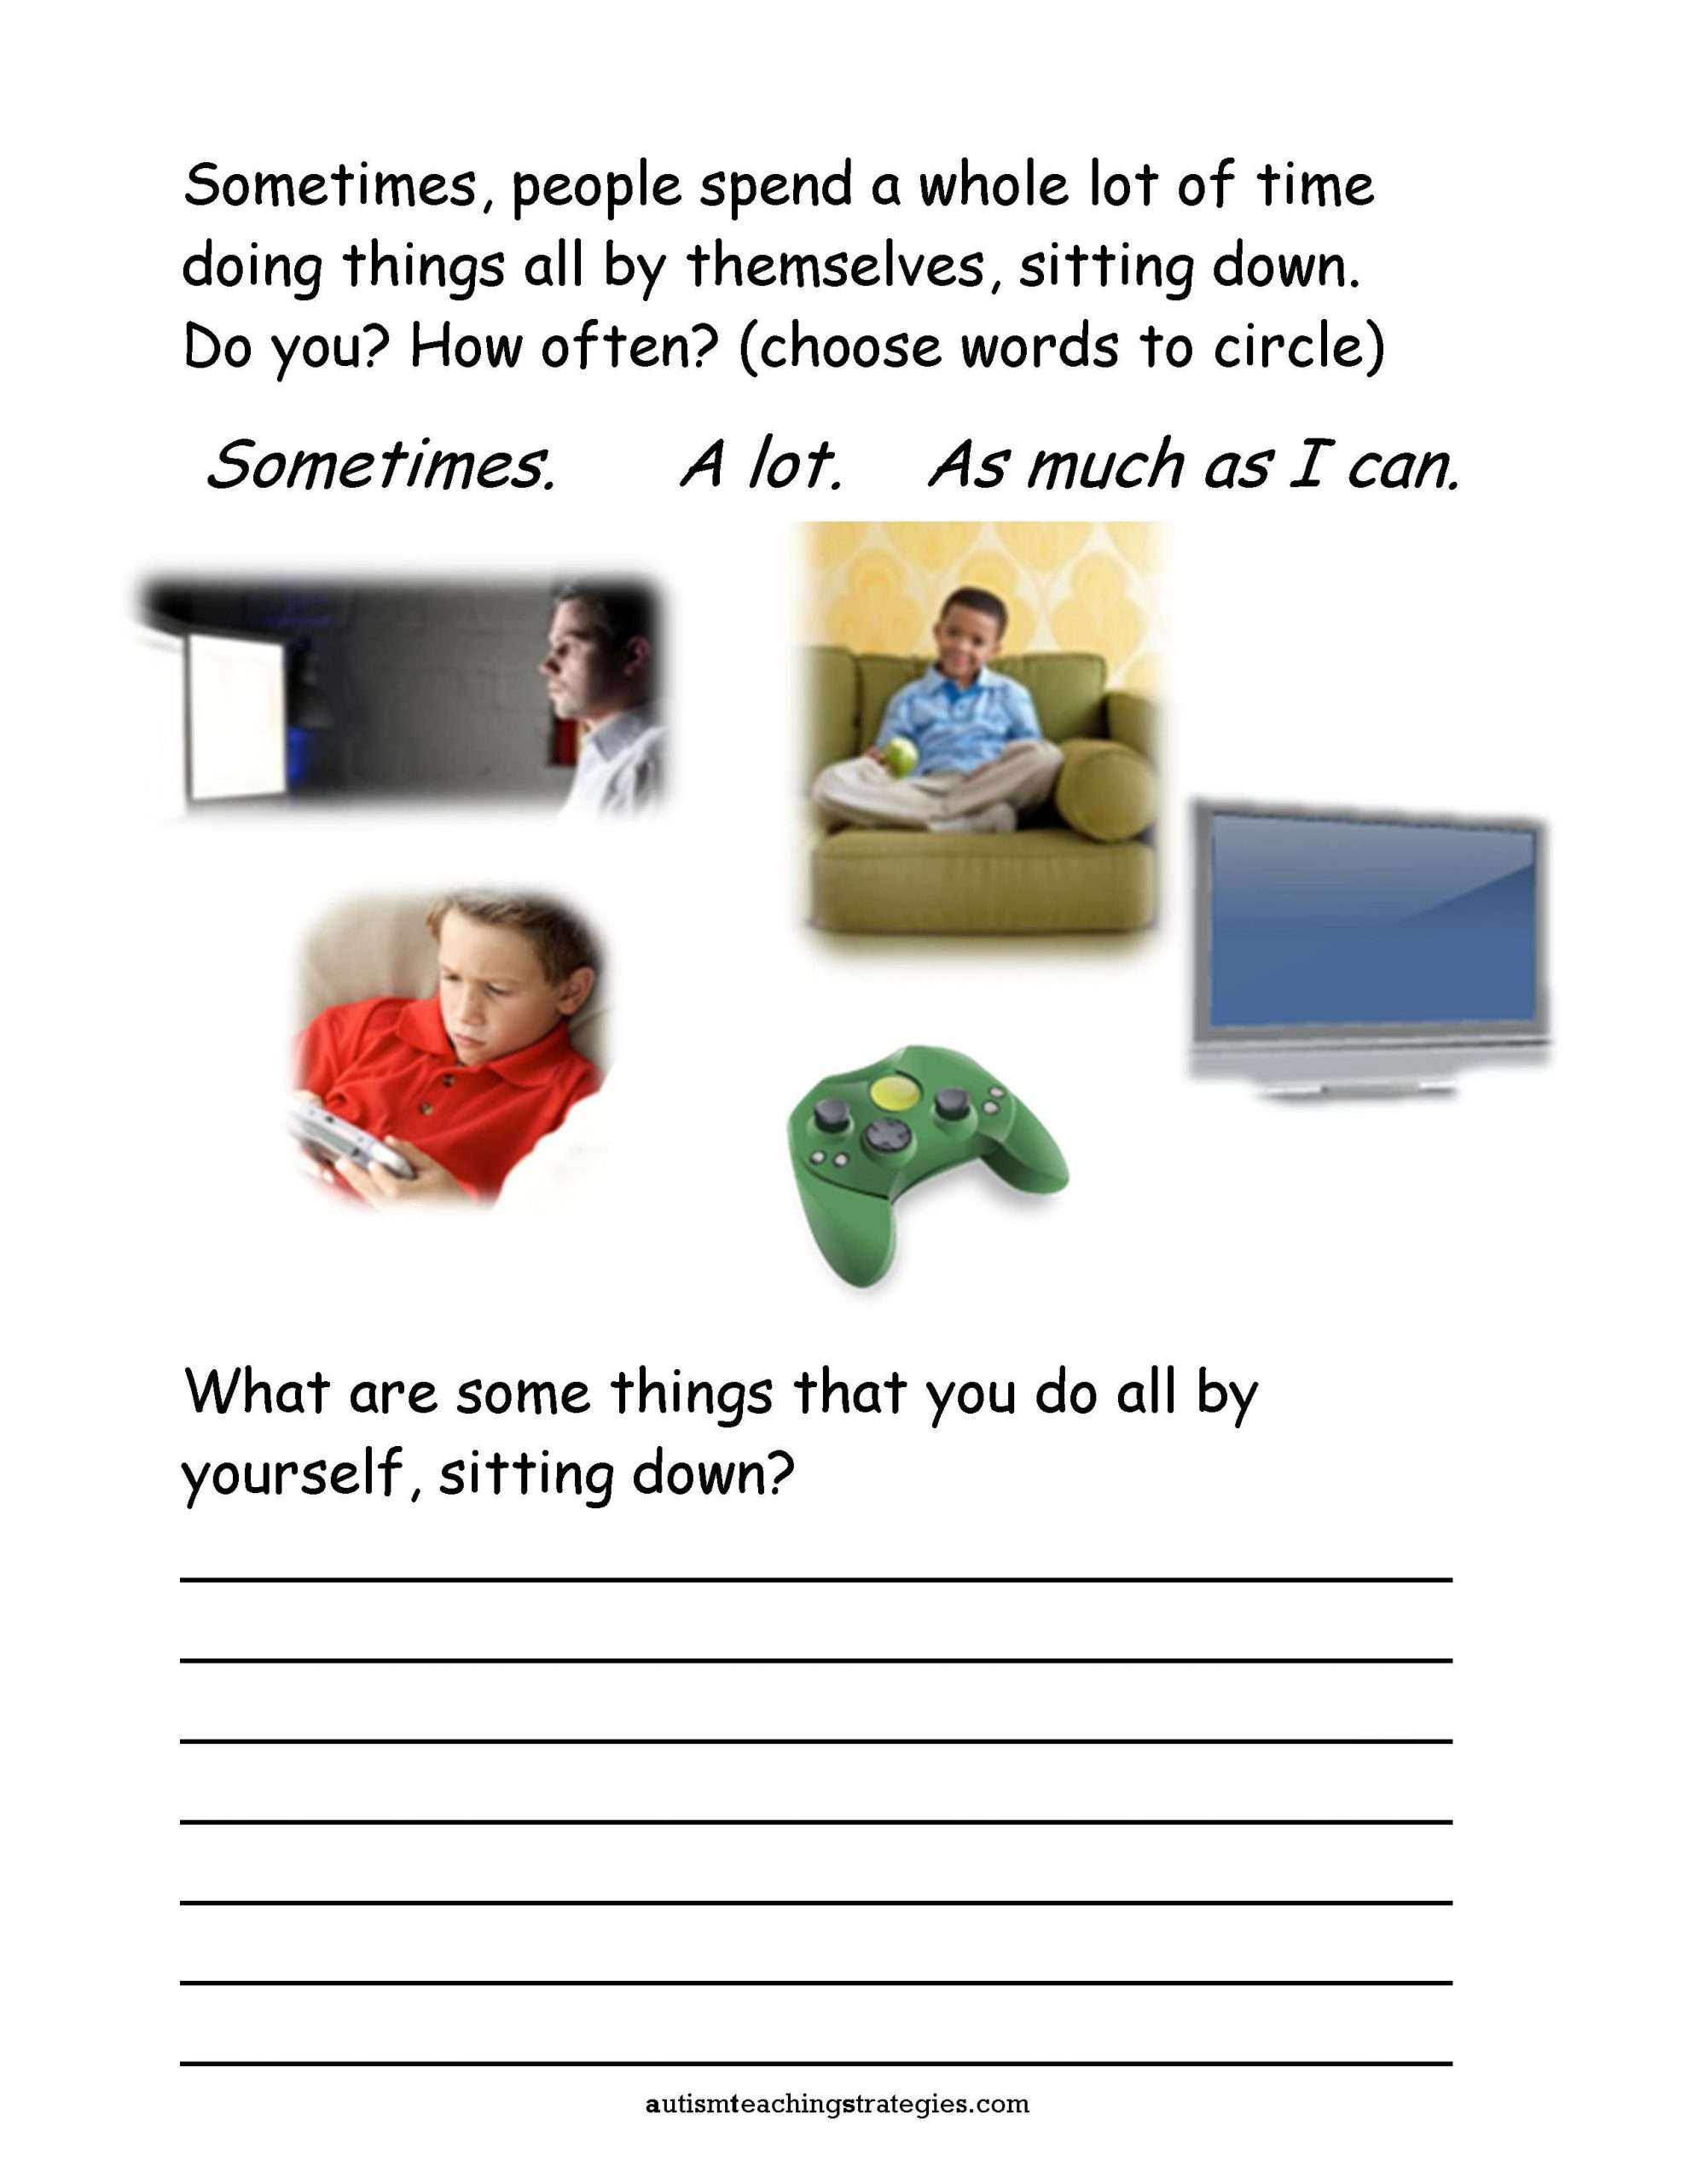 Social Skills Worksheets for Autism Pin On School organization & Planning